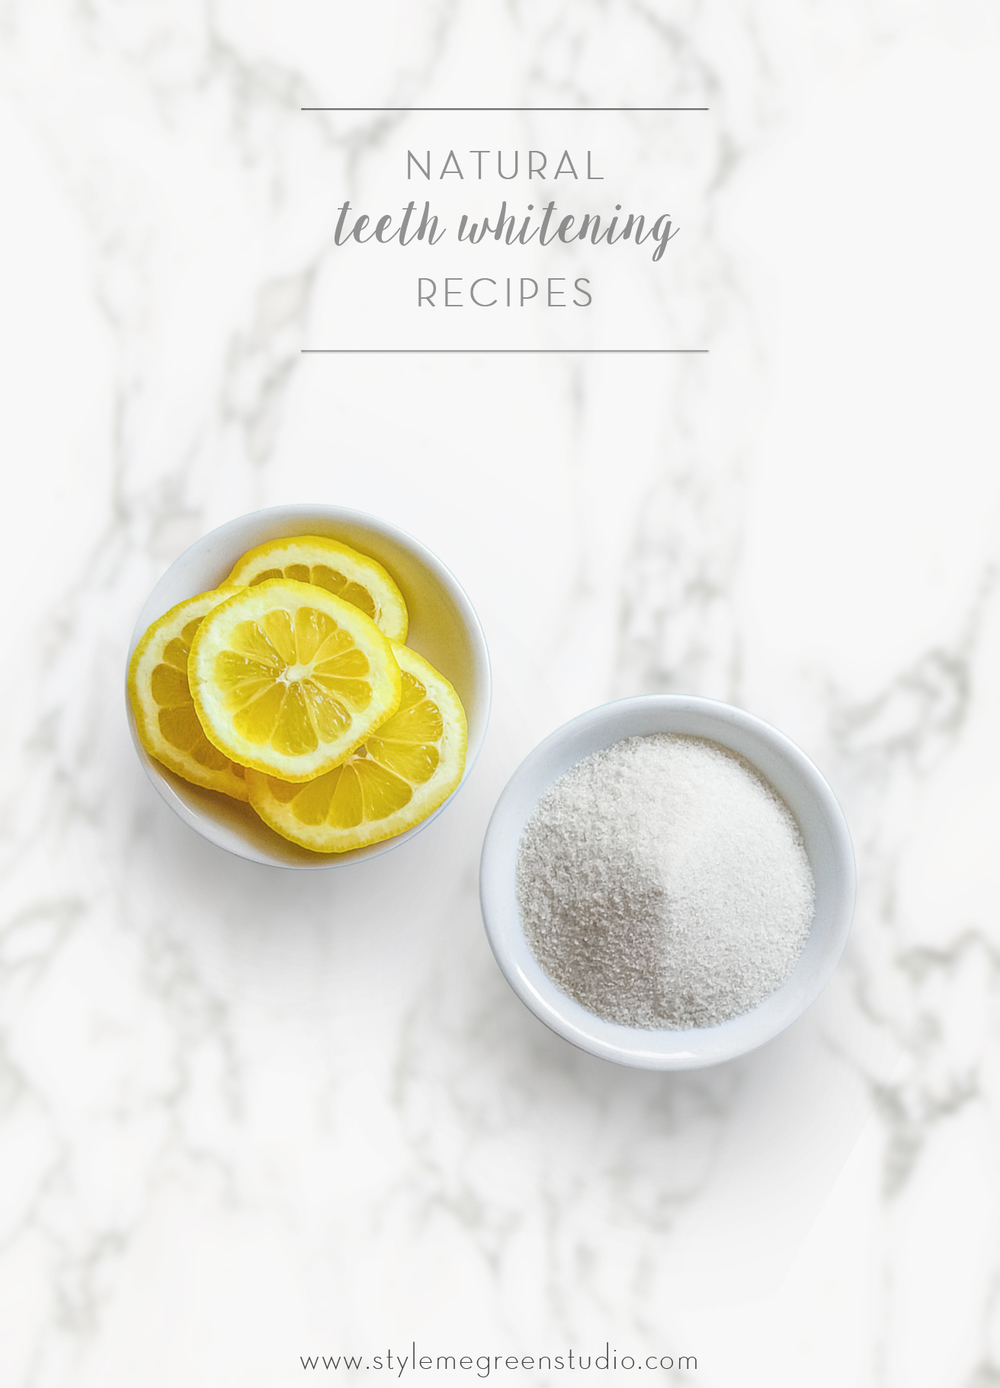 natural teeth whitening recipes